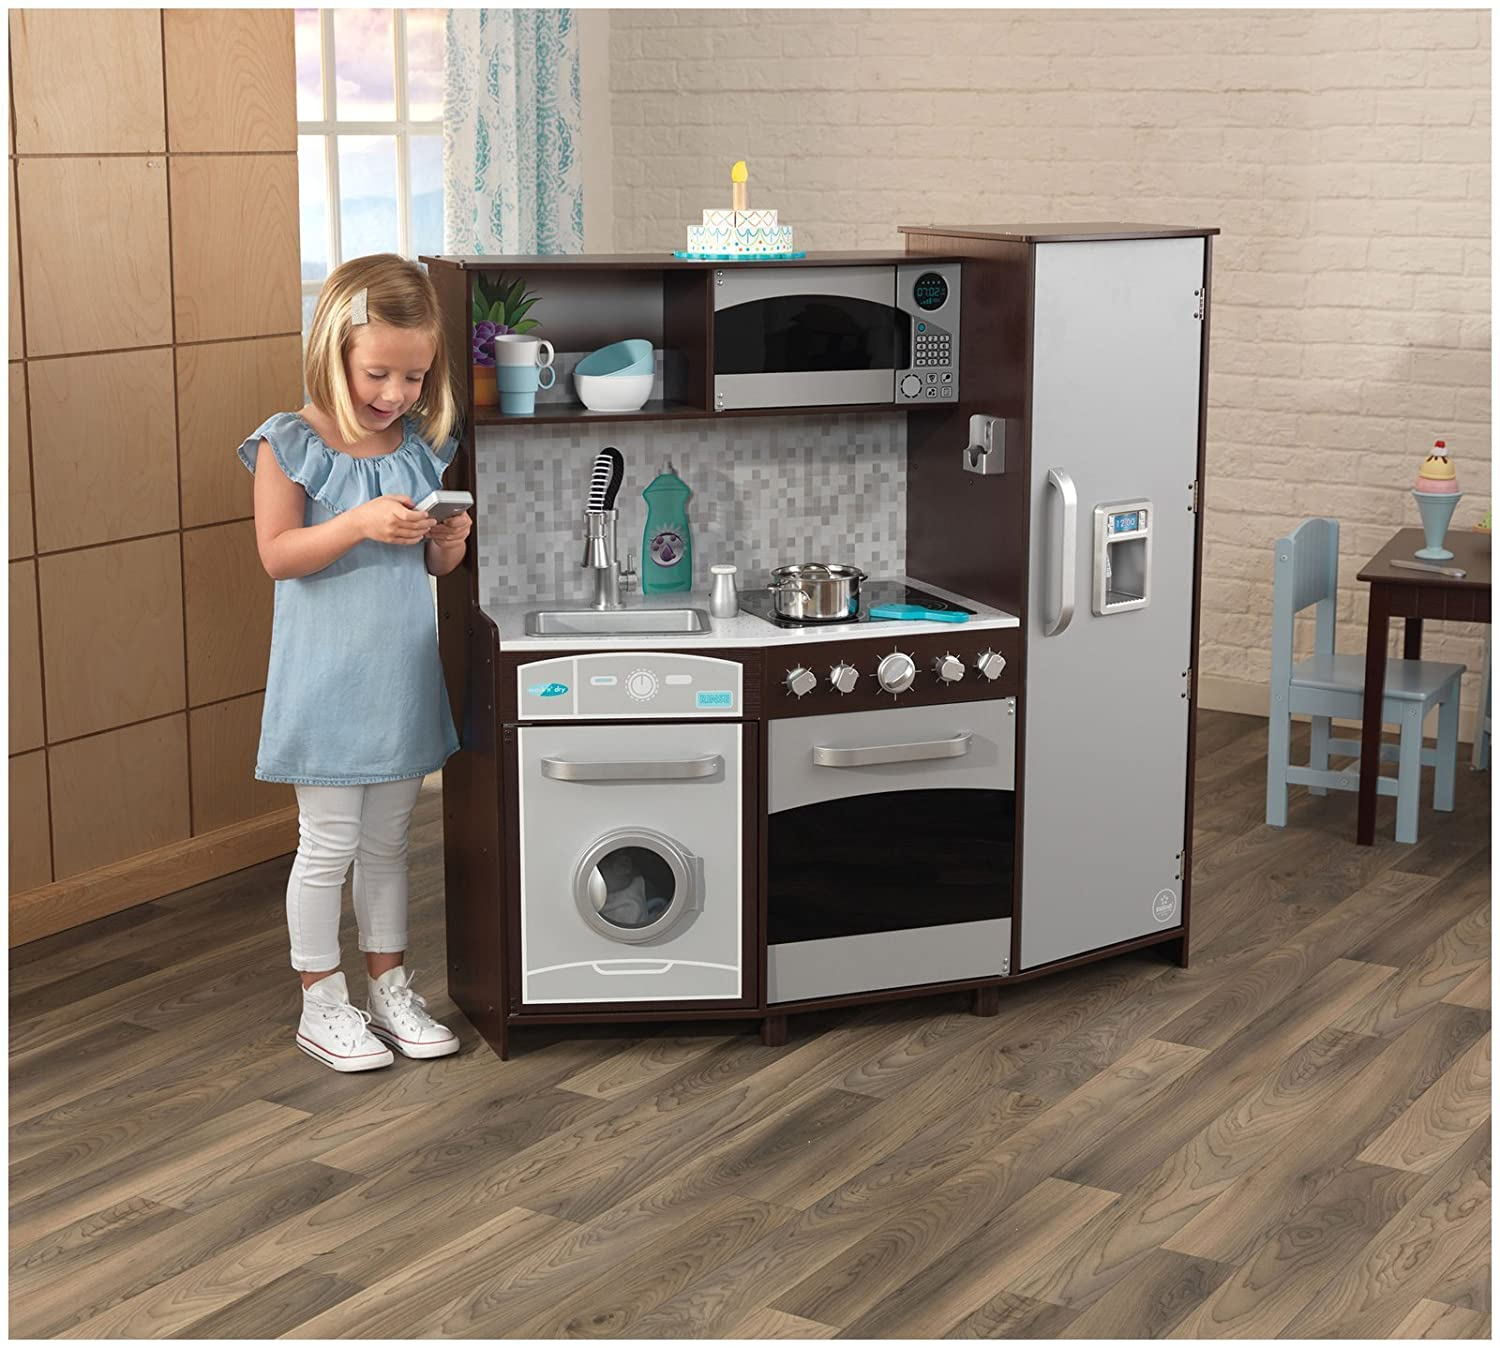 Espresso KidKraft Large Play Kitchen with Lights /& Sounds